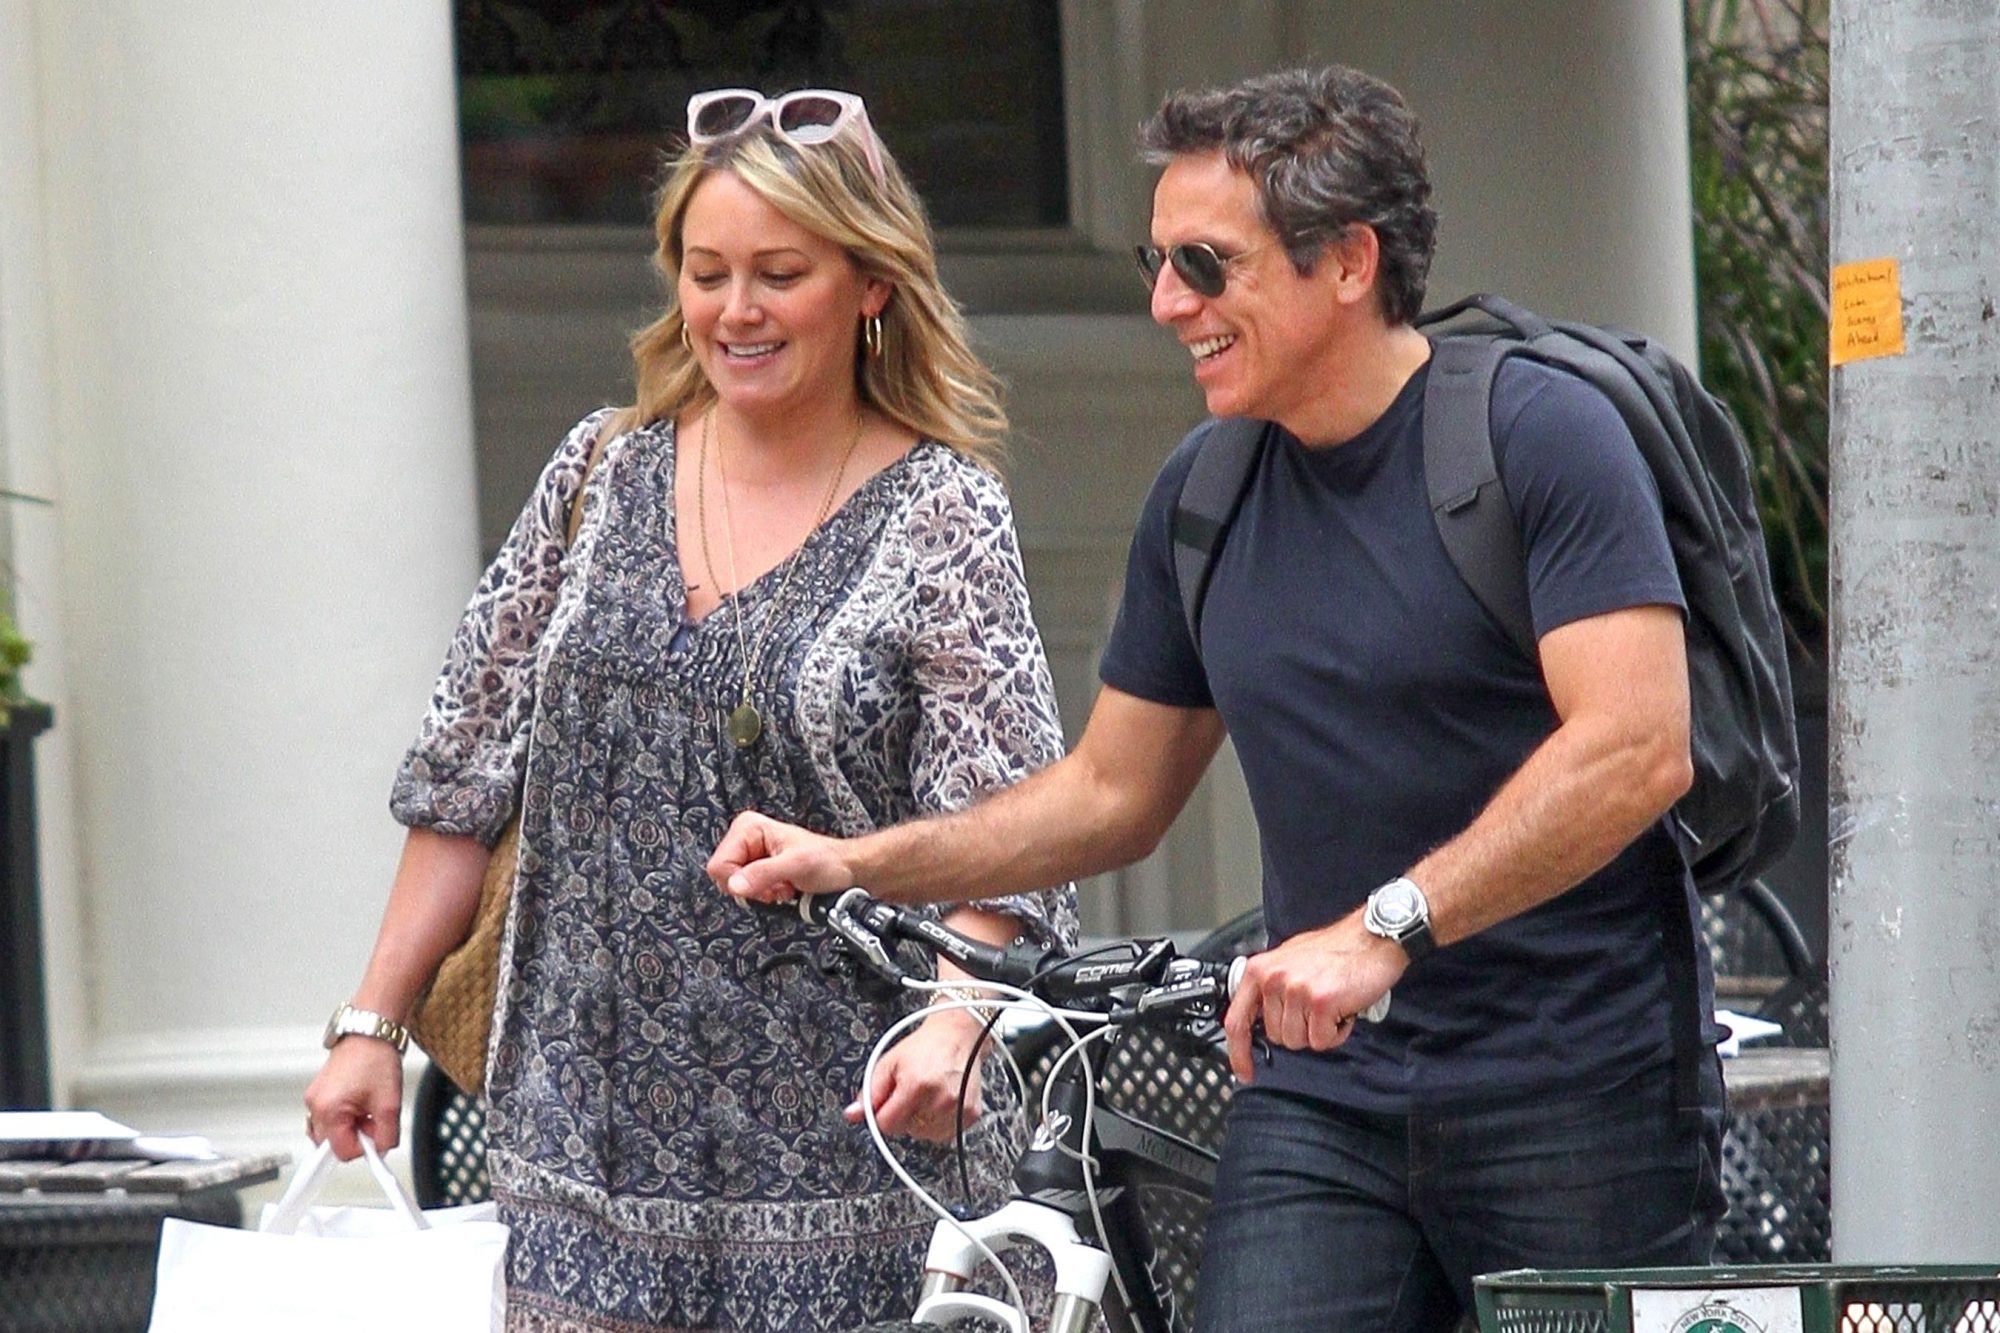 Friendly exes Ben Stiller and Christine Taylor are all smiles in NYC